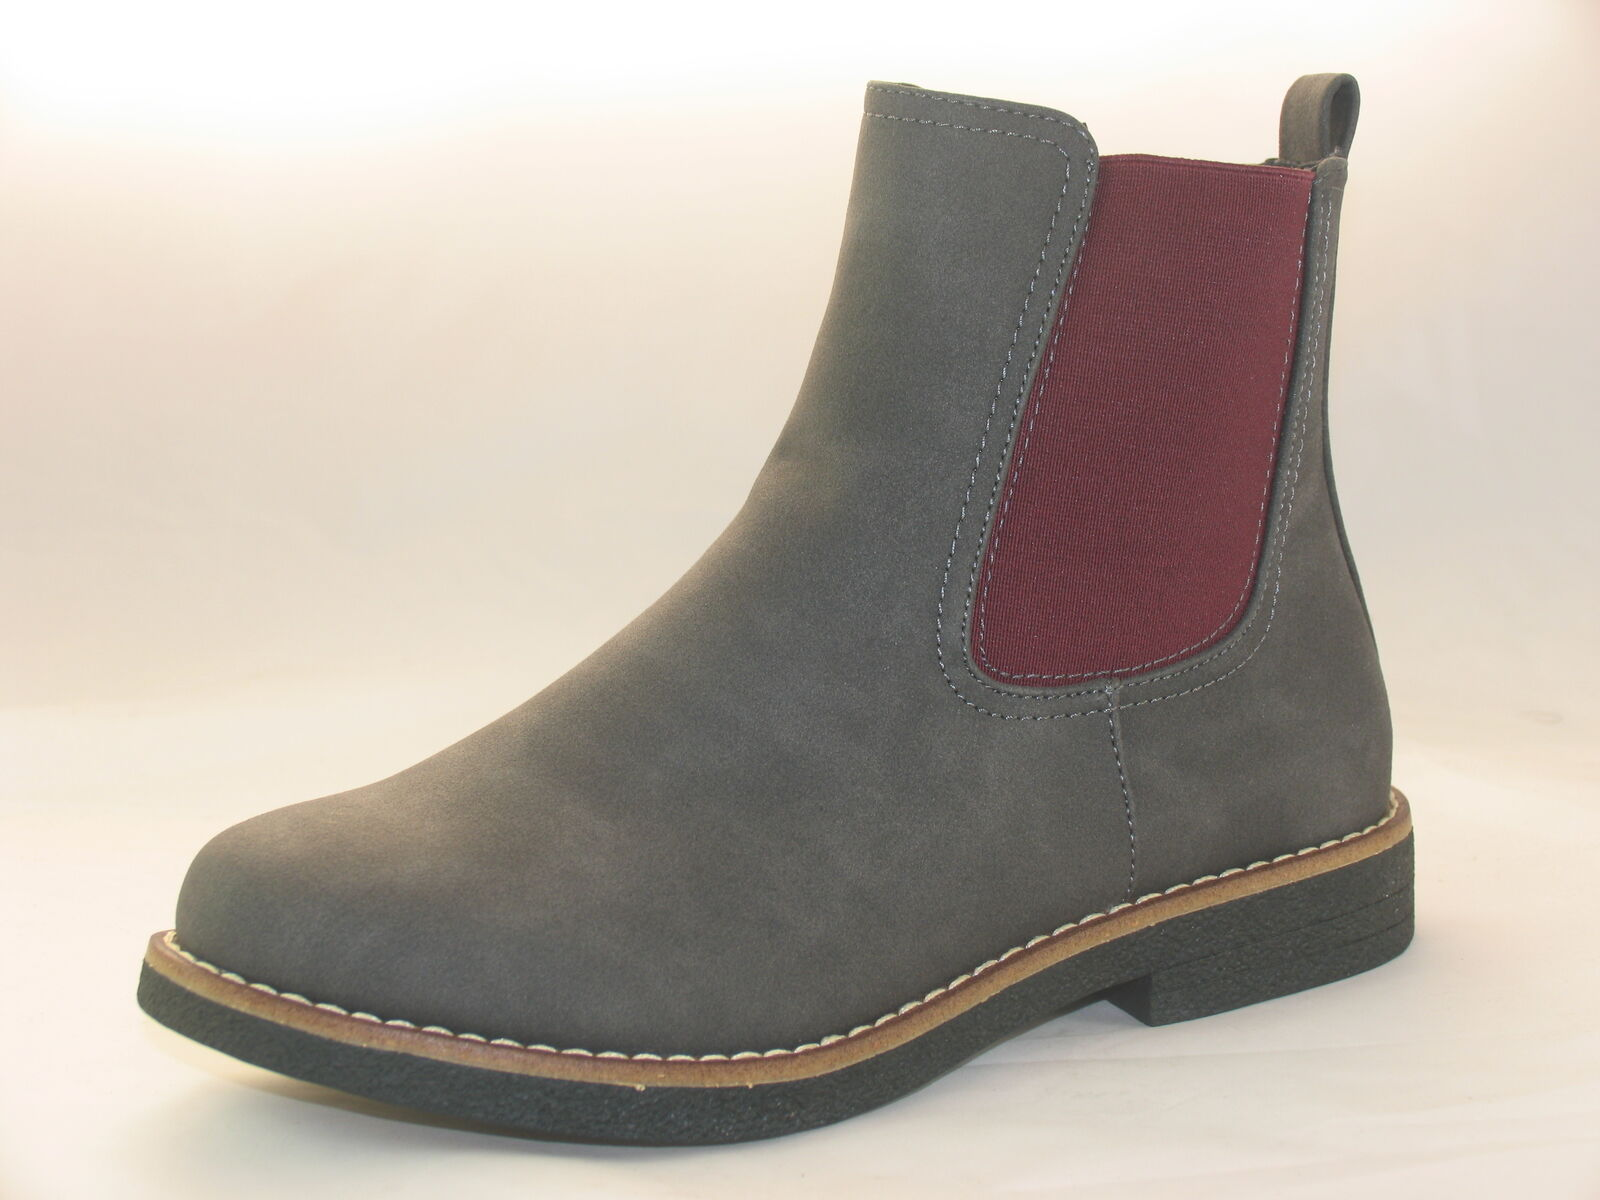 Womens Rieker 97880 Casual Chelsea Boots